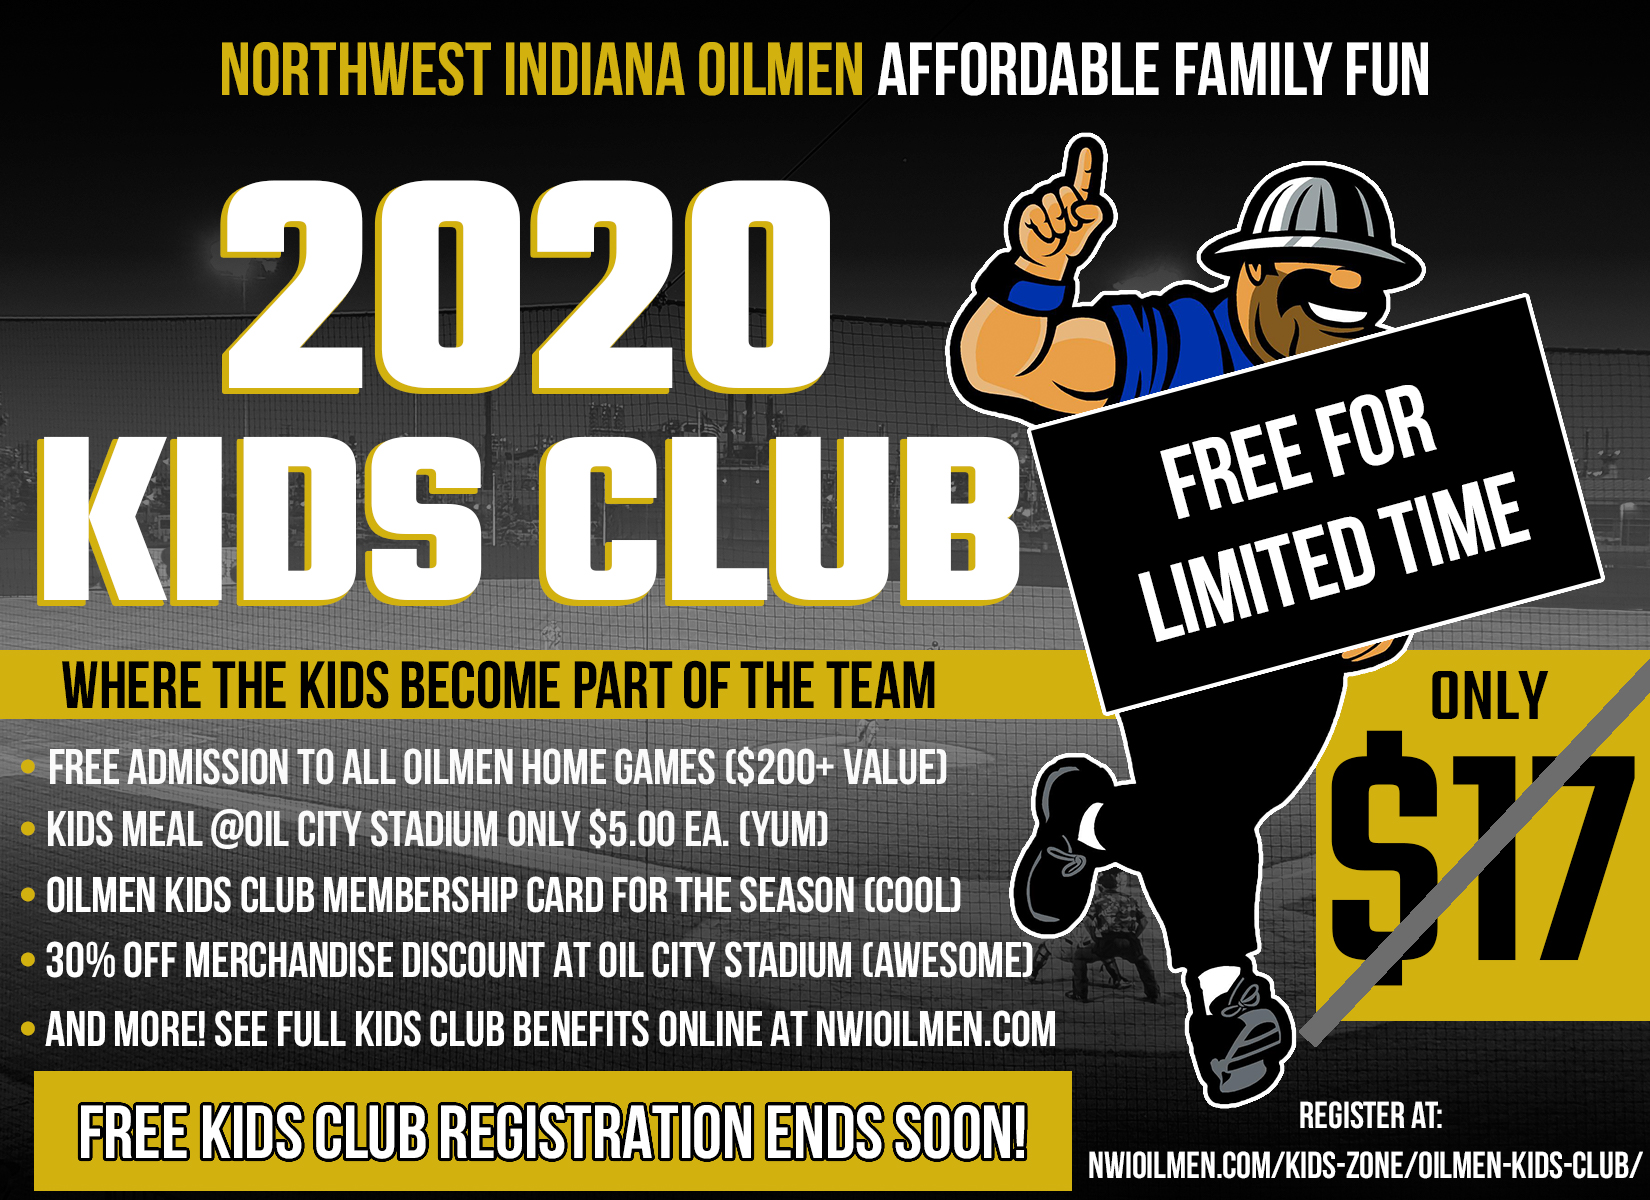 NWI Oilmen kids club 2020 graphic.jpg